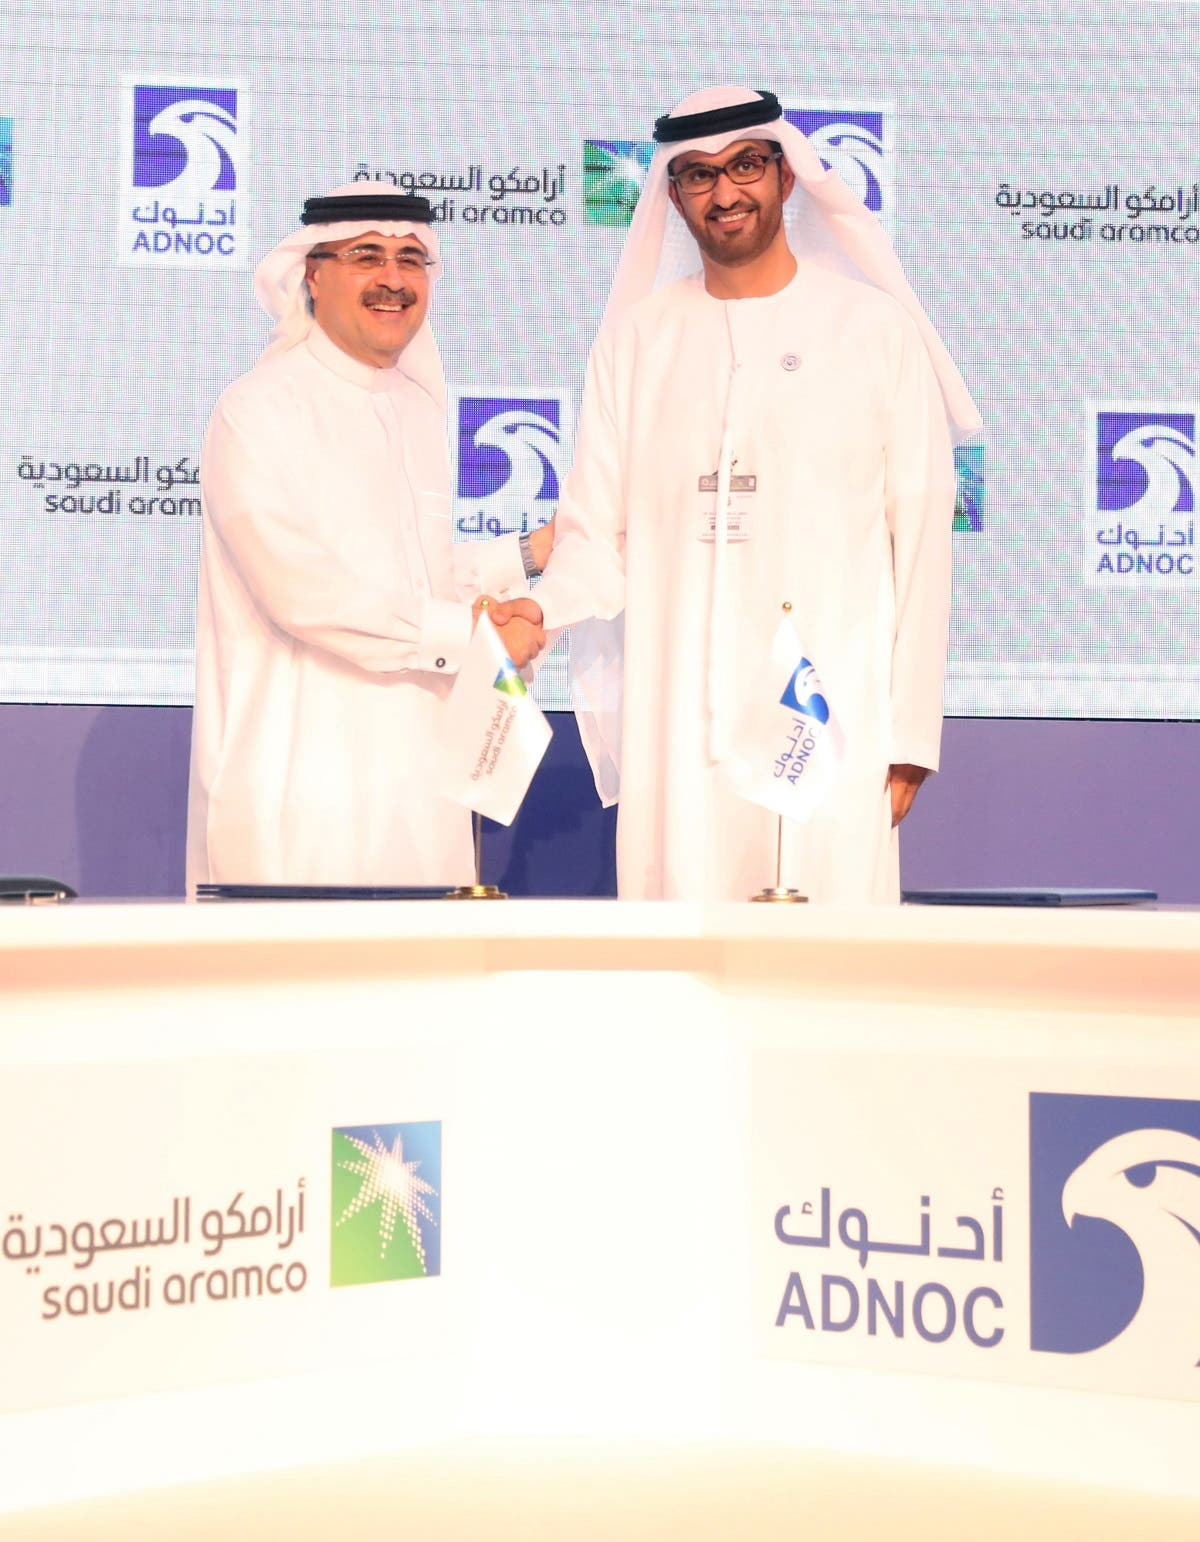 Sultan Ahmed al-Jaber (R), the director general and CEO of the Abu Dhabi National Oil Company (ADNOC), shakes hands with Saudi Aramco CEO Amin Nasser after signing a cooperation deal in Abu Dhabi on November 12, 2018.  (AFP)